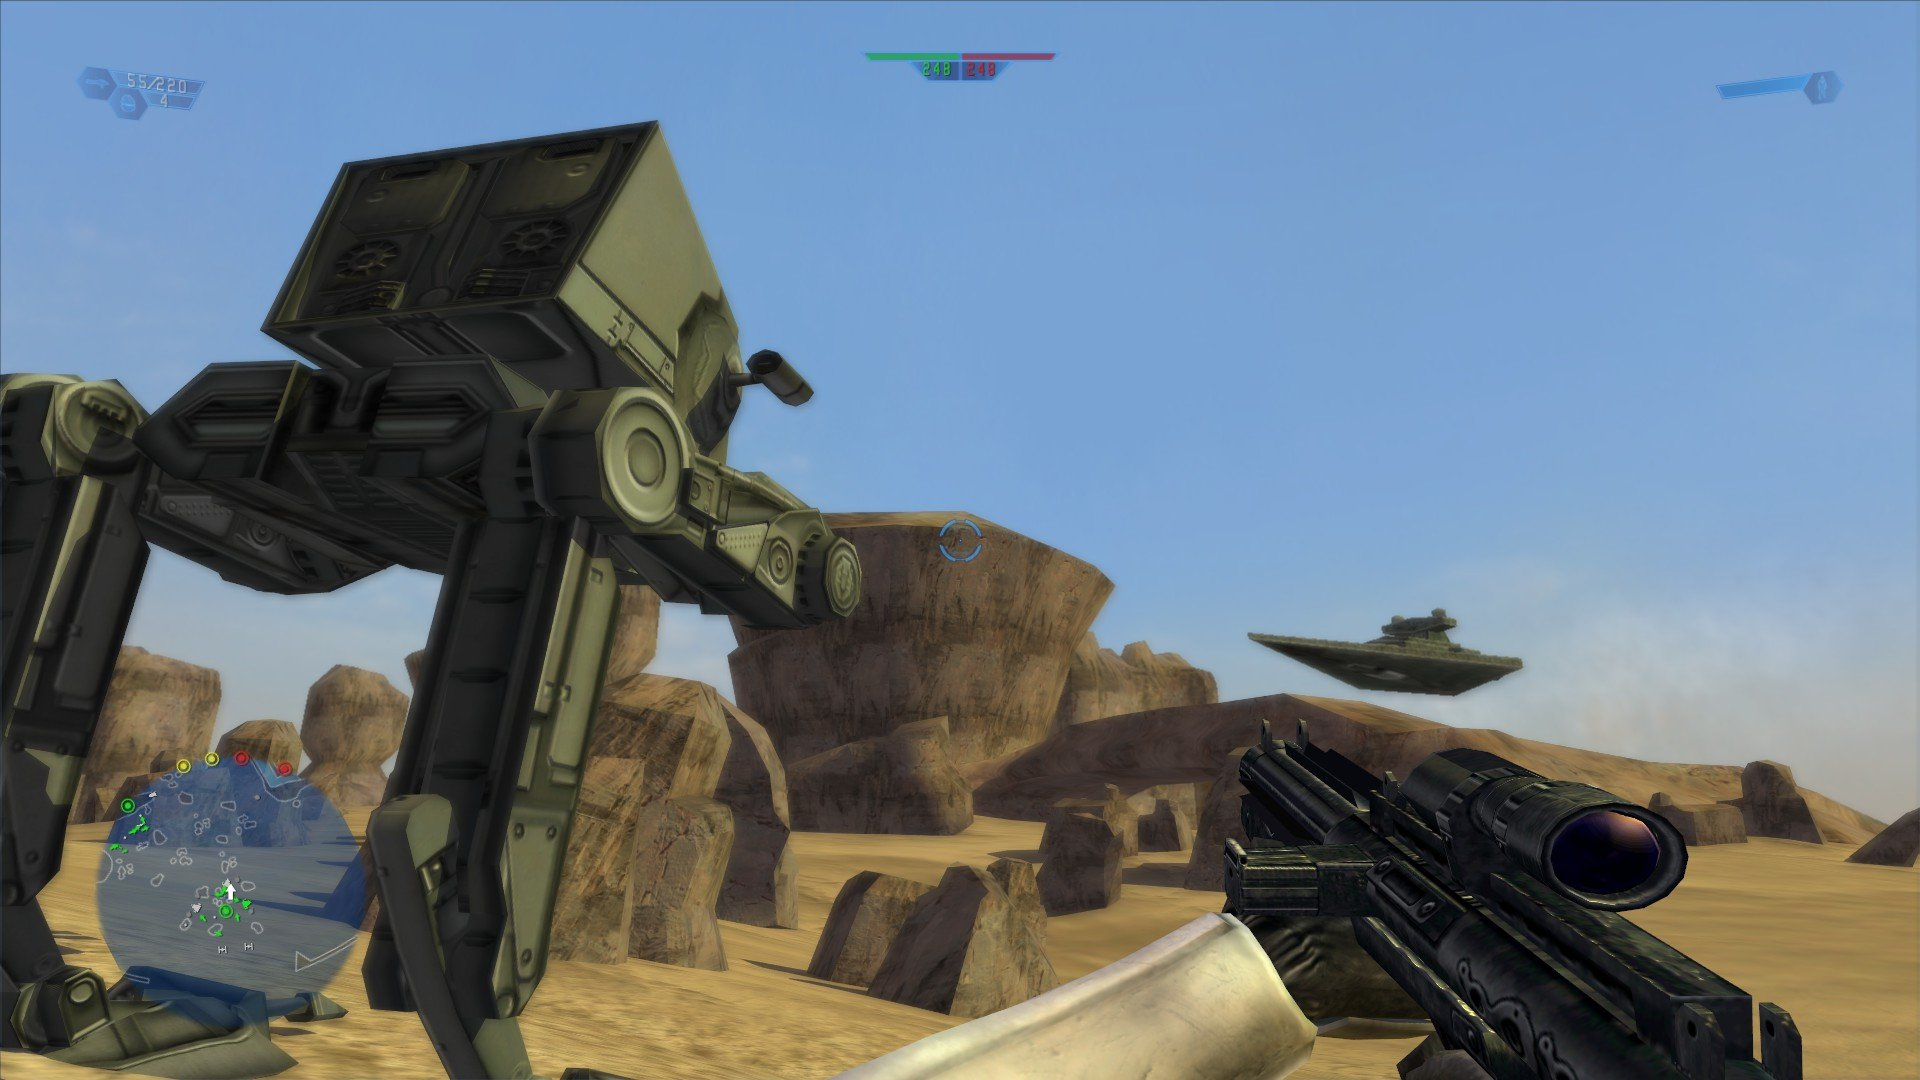 The original Star Wars Battlefront is now available on Steam and GOG